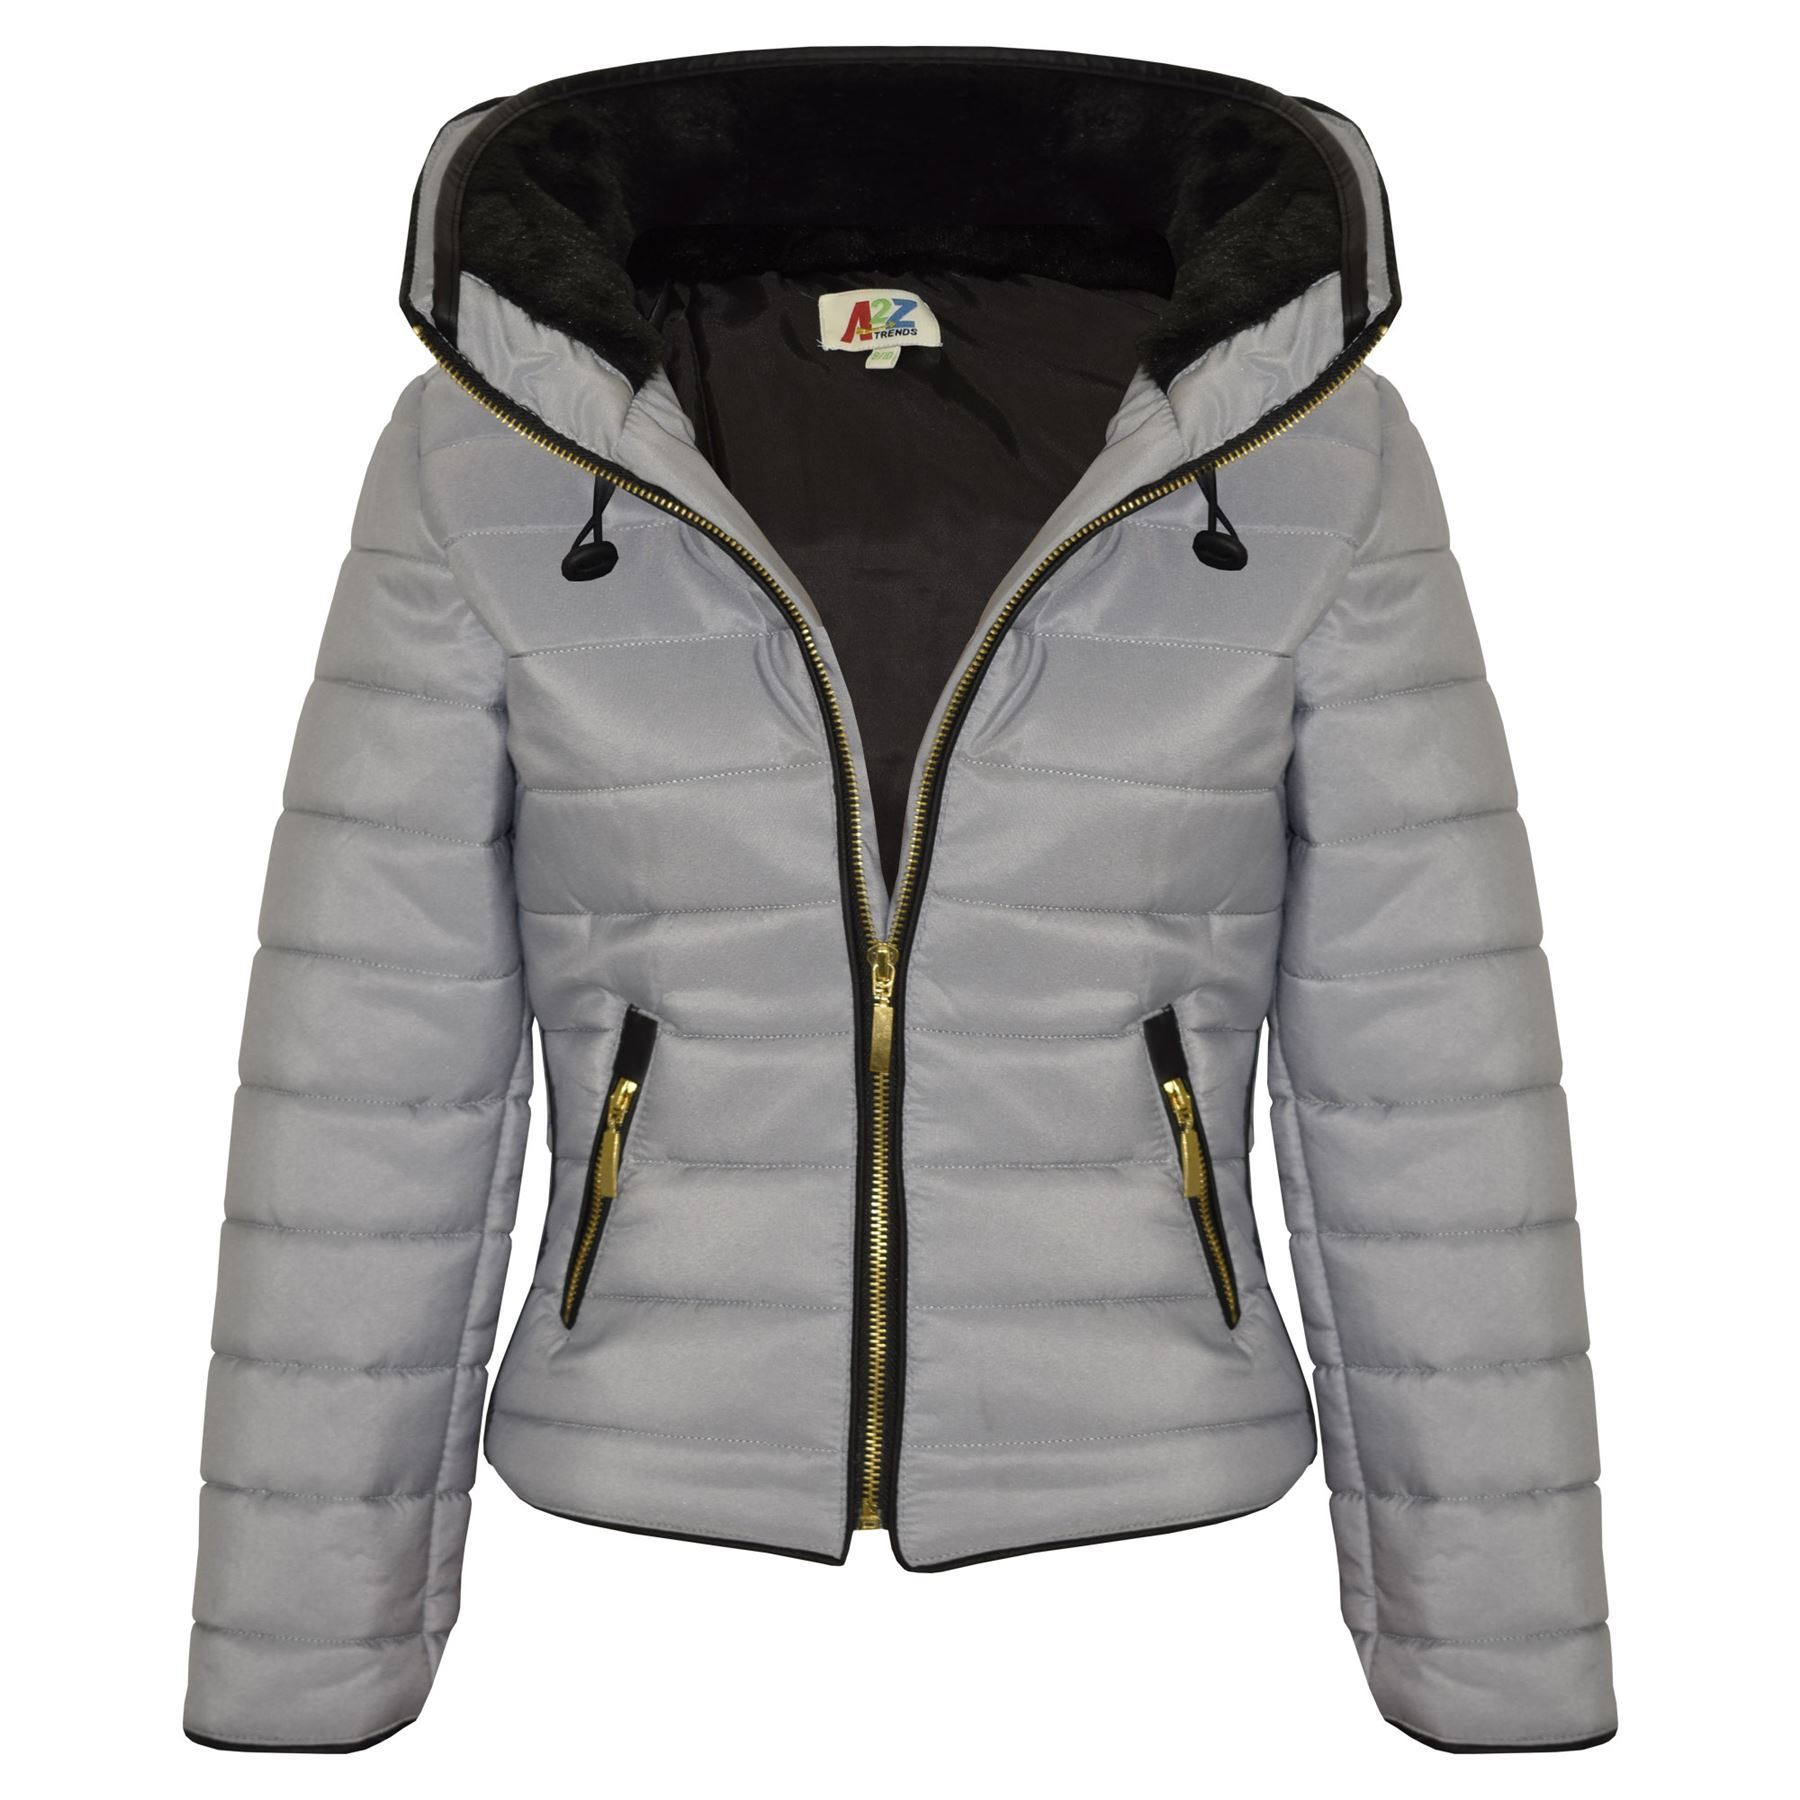 Buy the latest designer kids jackets and coats at sale prices. We stock an extensive range of products such as raincoats and parkas as well as padded, puffer and waterproof jackets. You'll also find school and winter coats from top brands like Converse, adidas, Nike, Trespass, ONeills & more.